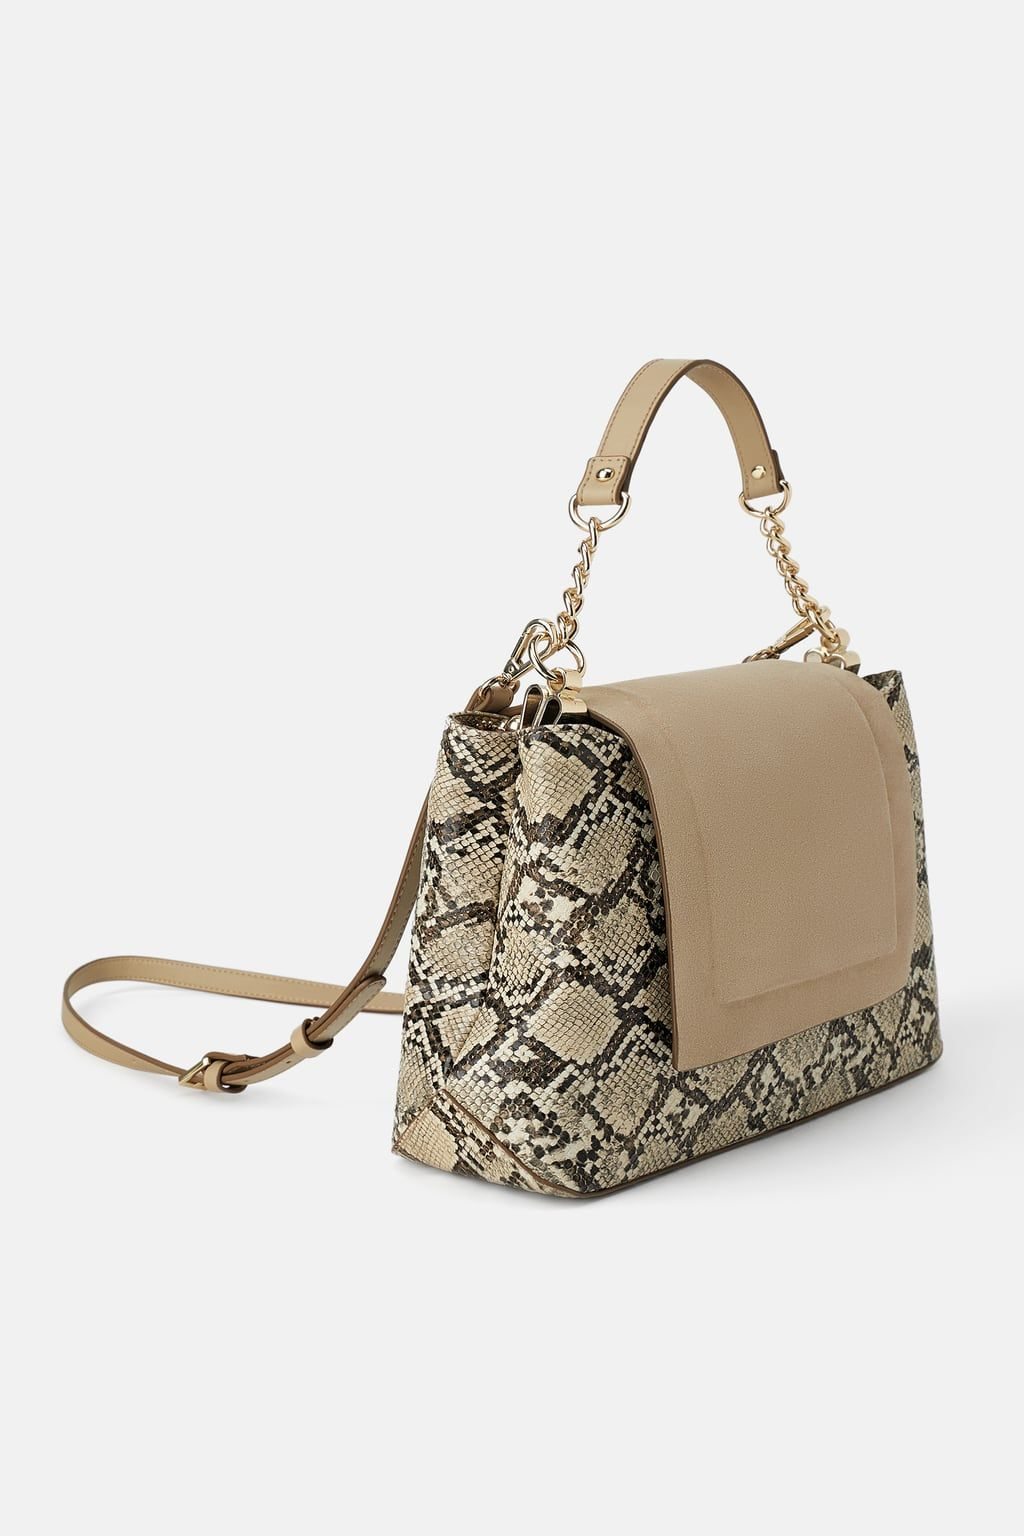 1c92b0e9 Animal print crossbody bag with leather flap in 2019 | bags | Bags ...